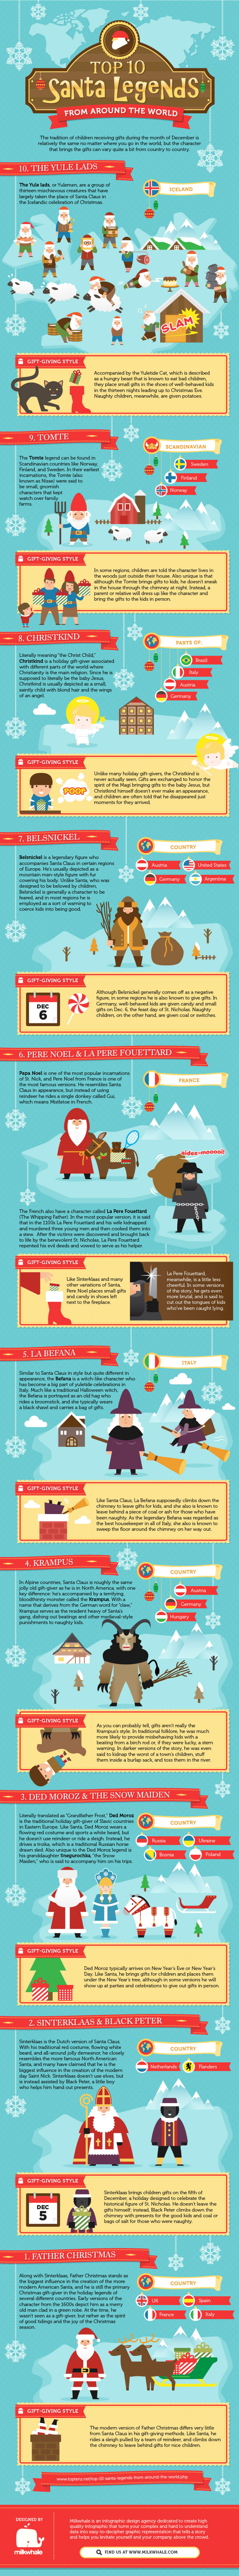 10 Legends of Santa from Around The World Infographic